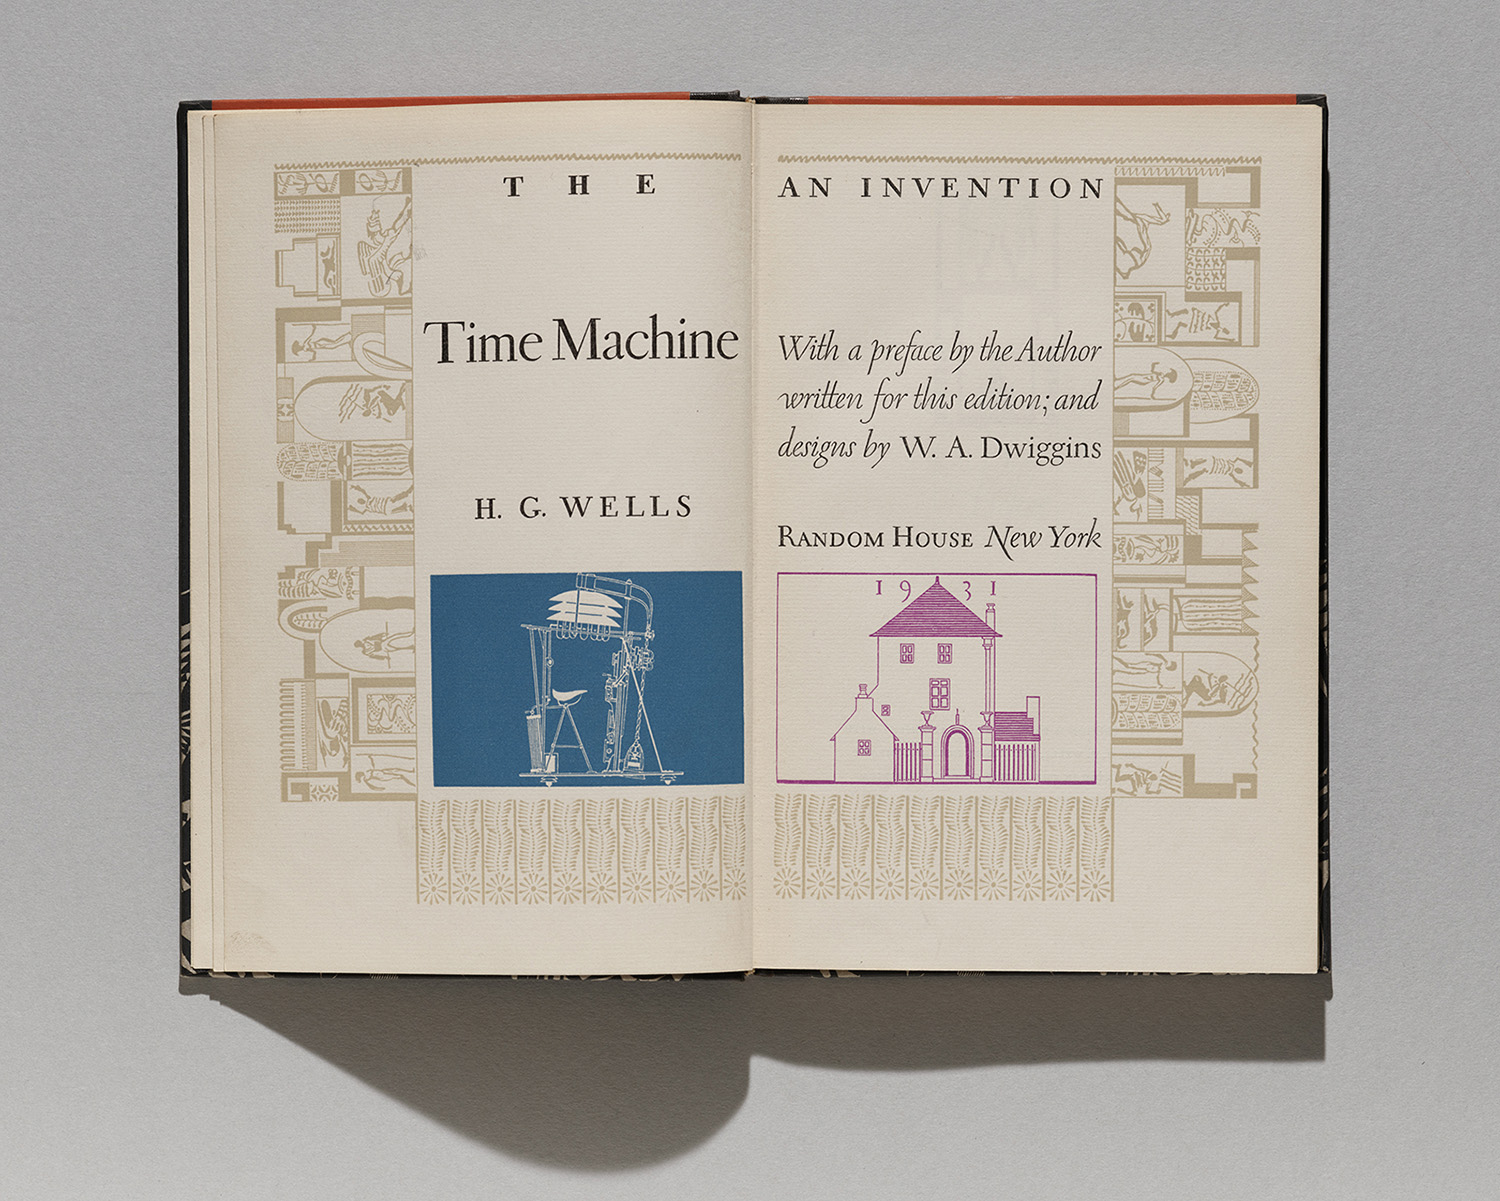 Title page from The Time Machine by H. G. Wells